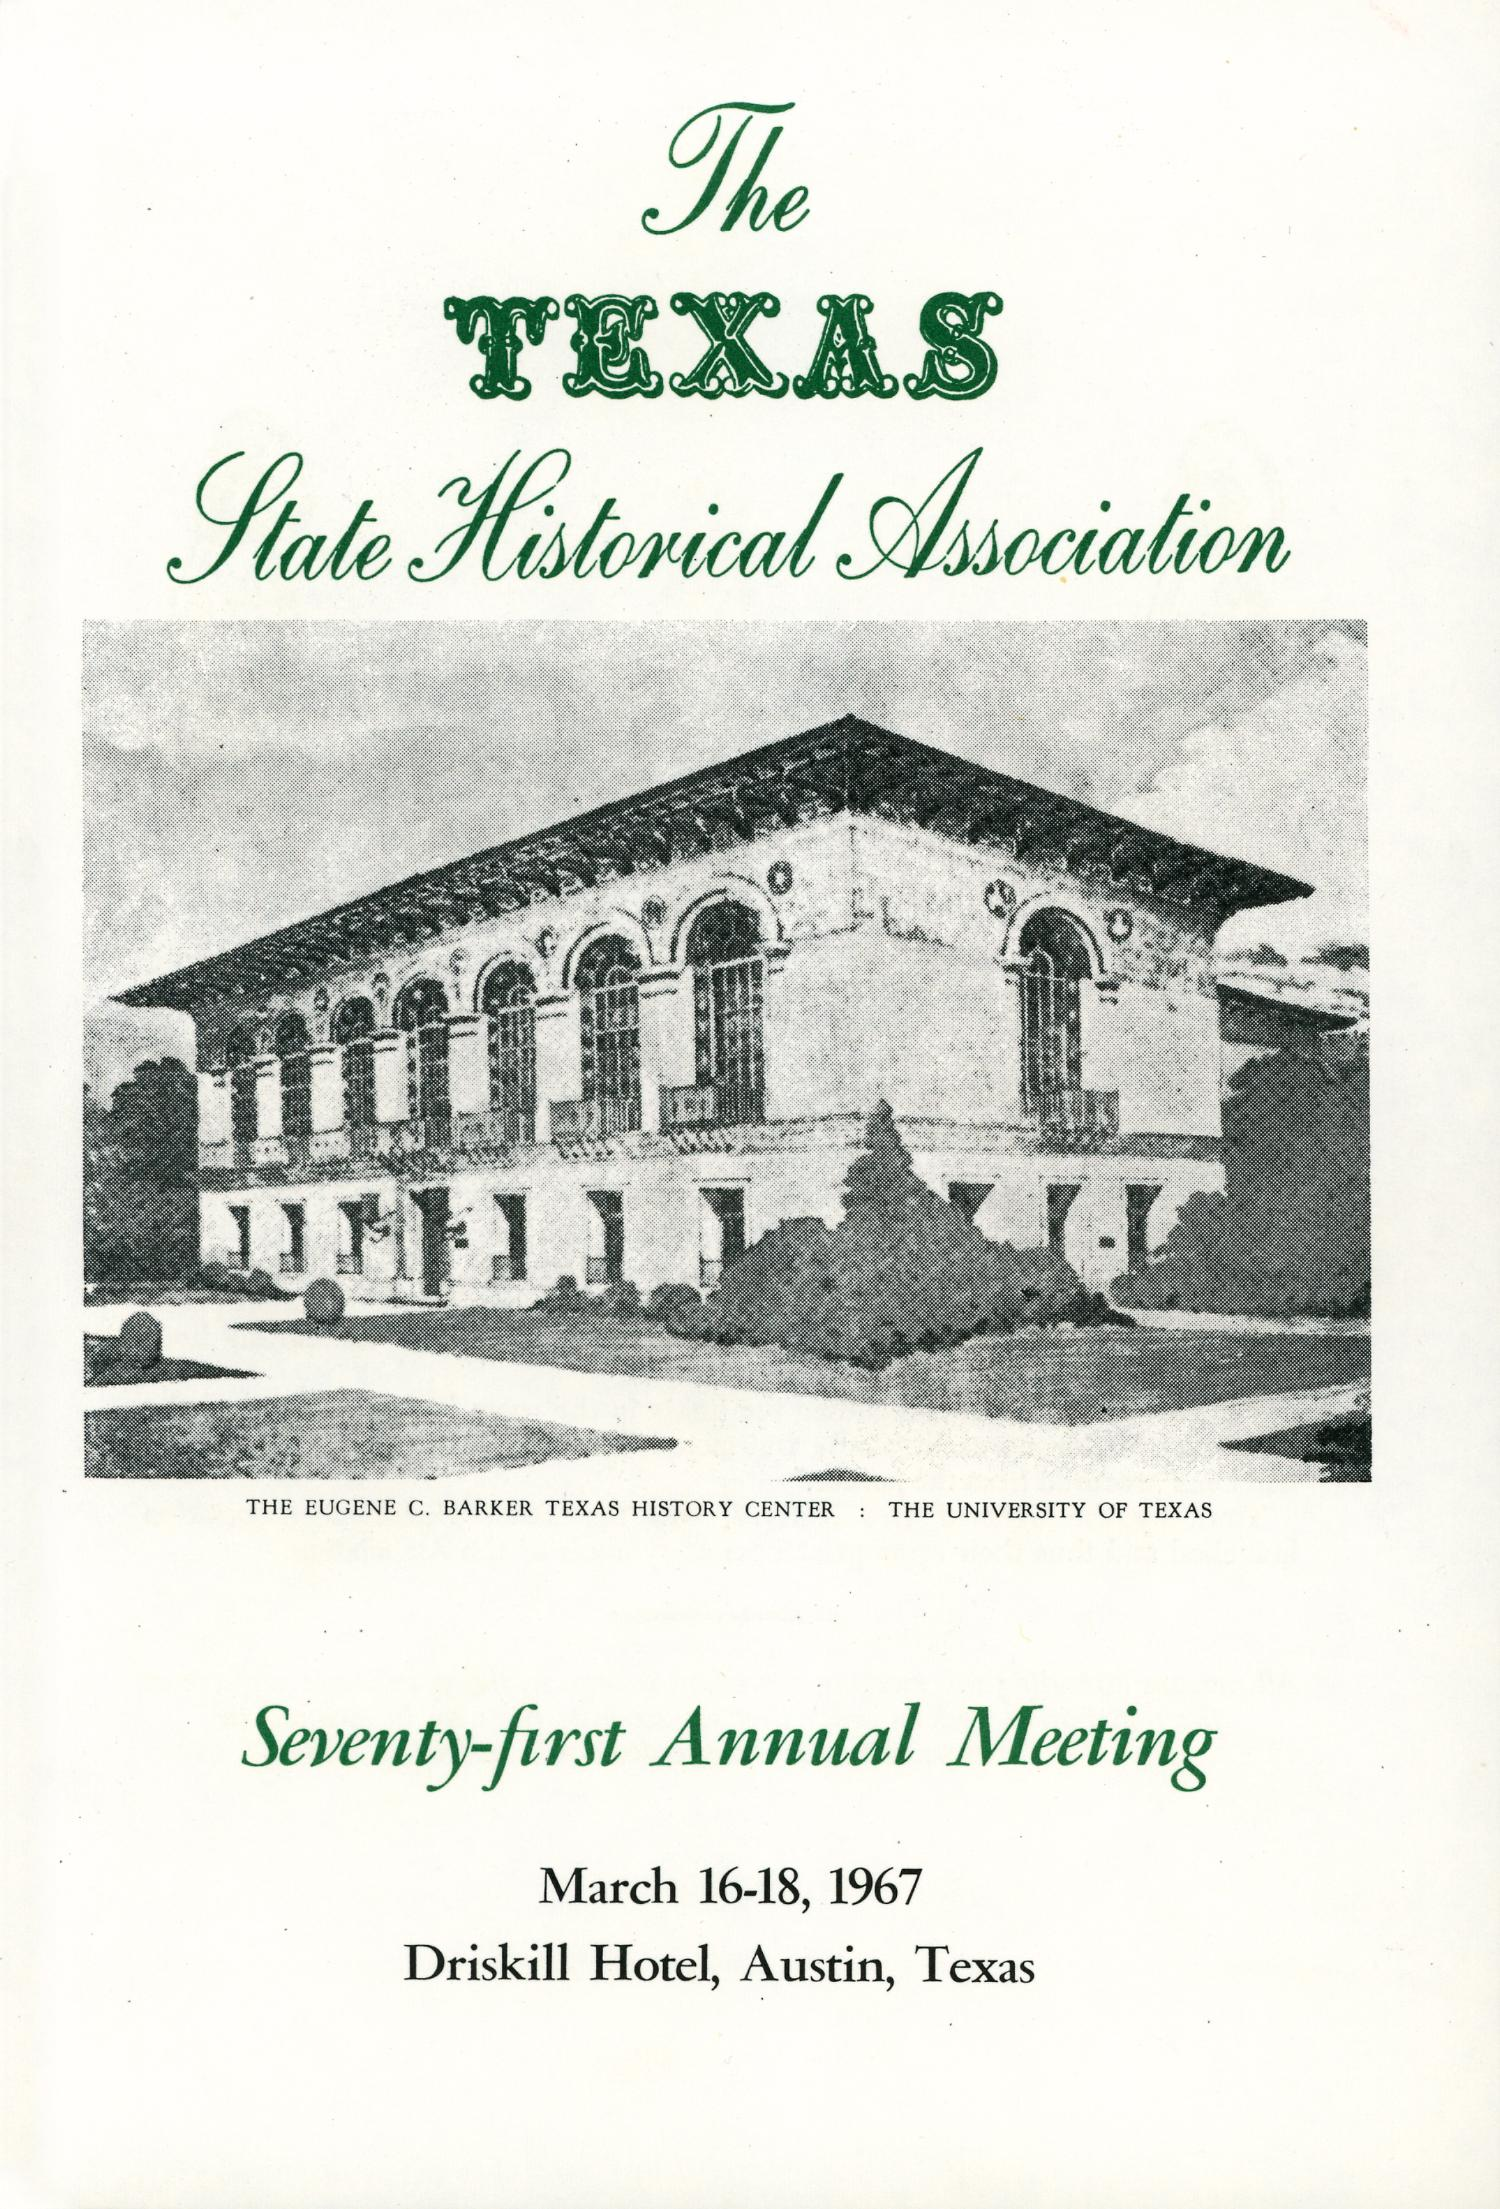 Texas State Historical Association Seventy-First Meeting, 1967                                                                                                      1